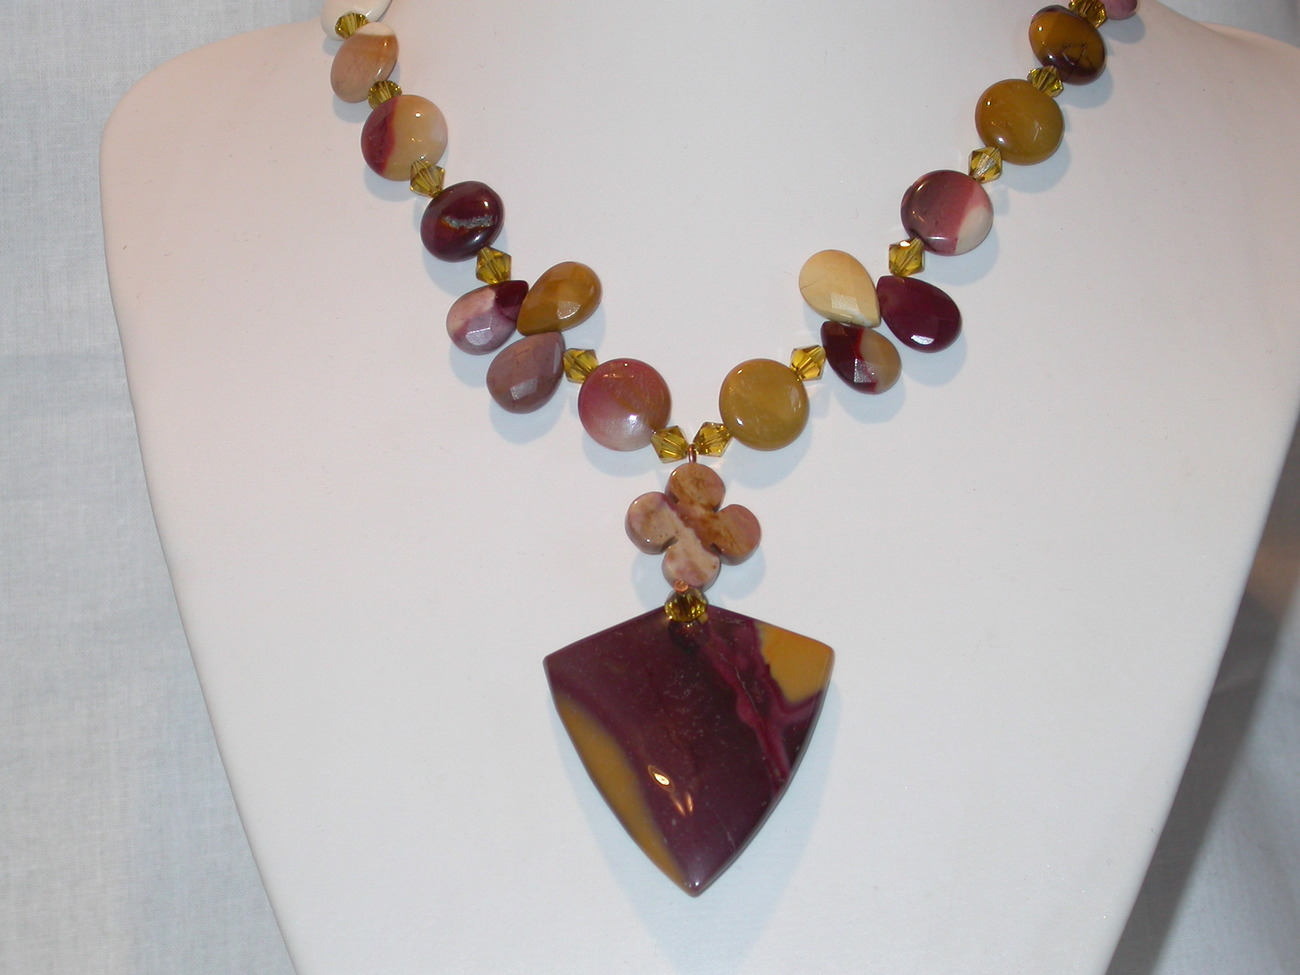 Delicious Cappuccino necklace. Mookaite Necklace and Earring